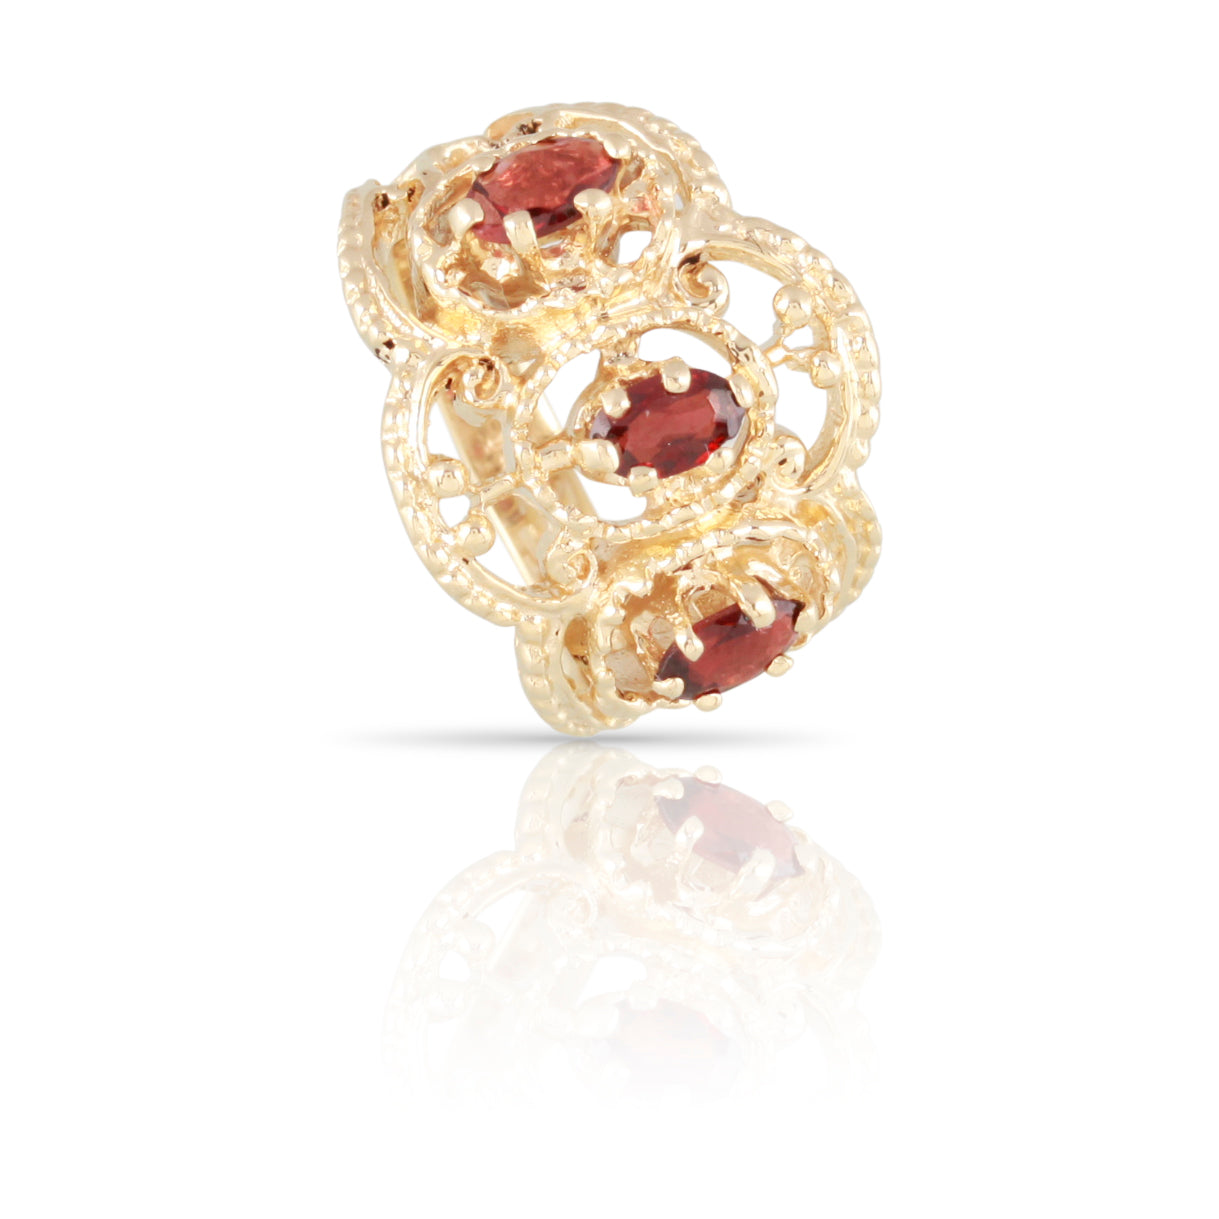 Garnet Ring | The Edith